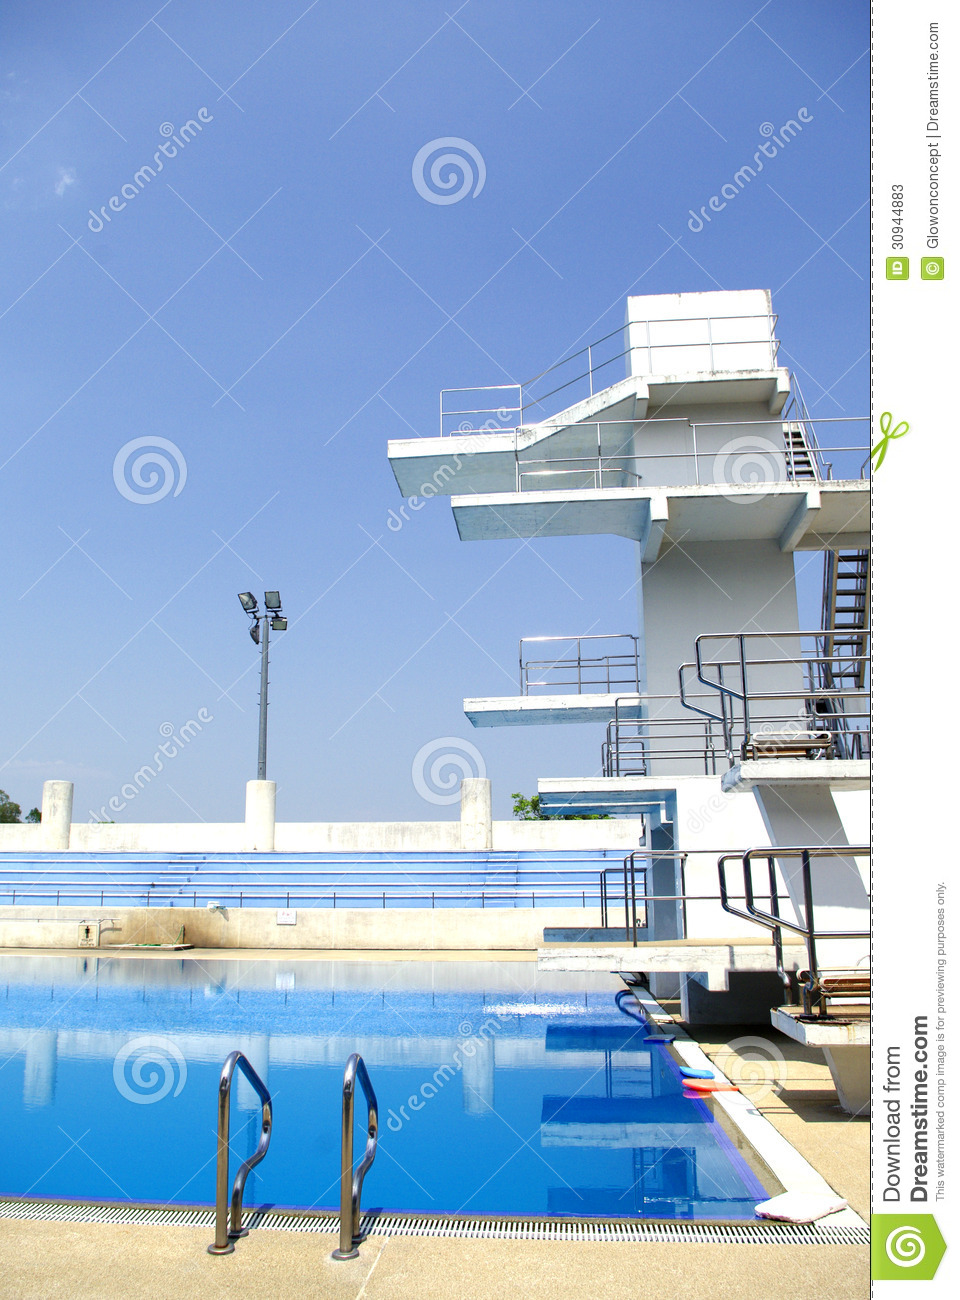 Diving Board Outdoor Swimming Pool Stock Images - Download 229 ...